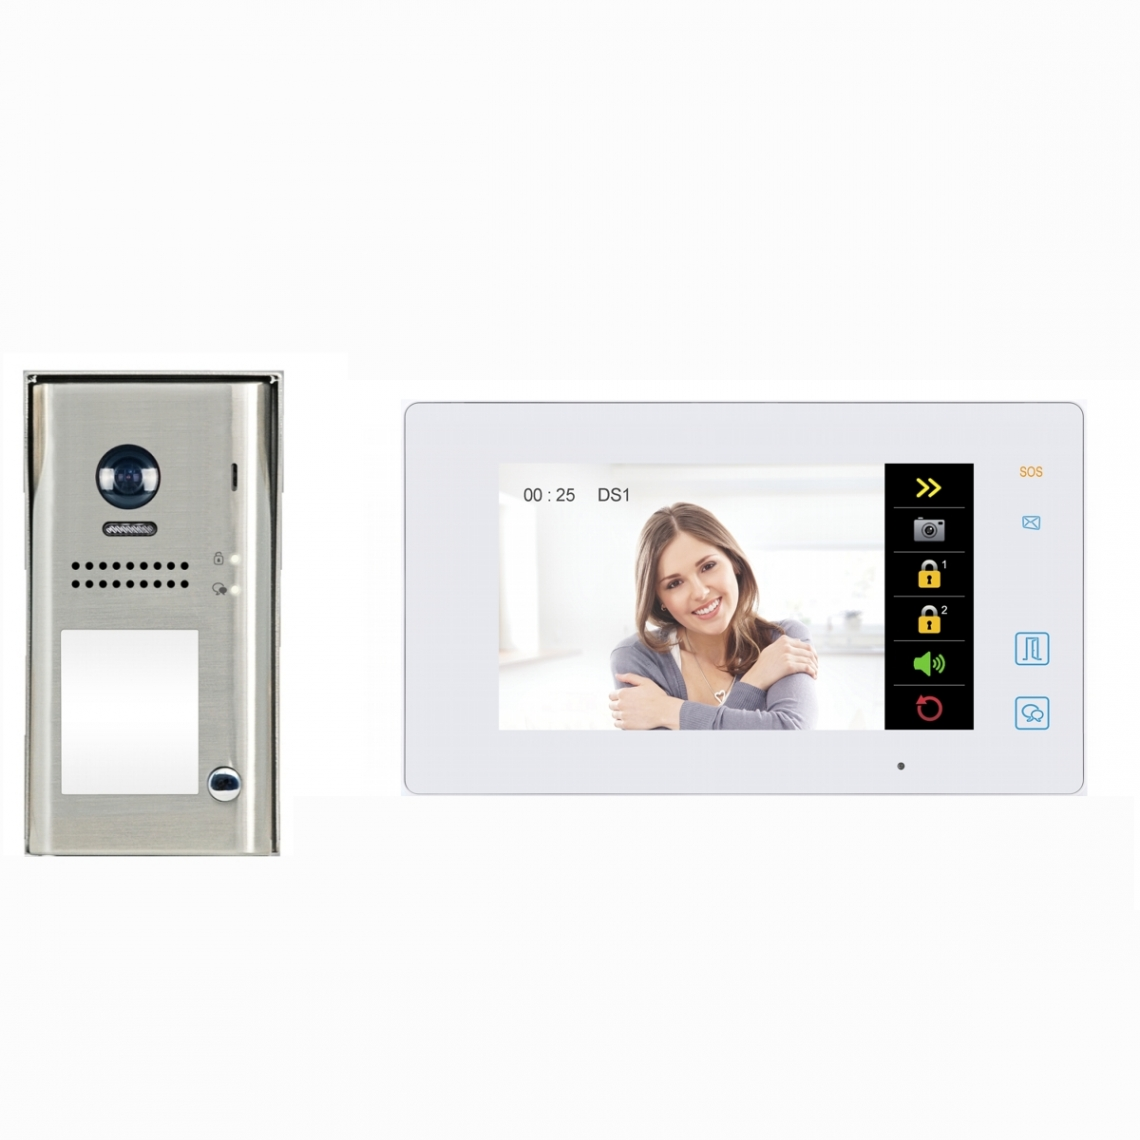 2 WIRE VIDEO DOOR PHONE KIT - 1SEK/MEW